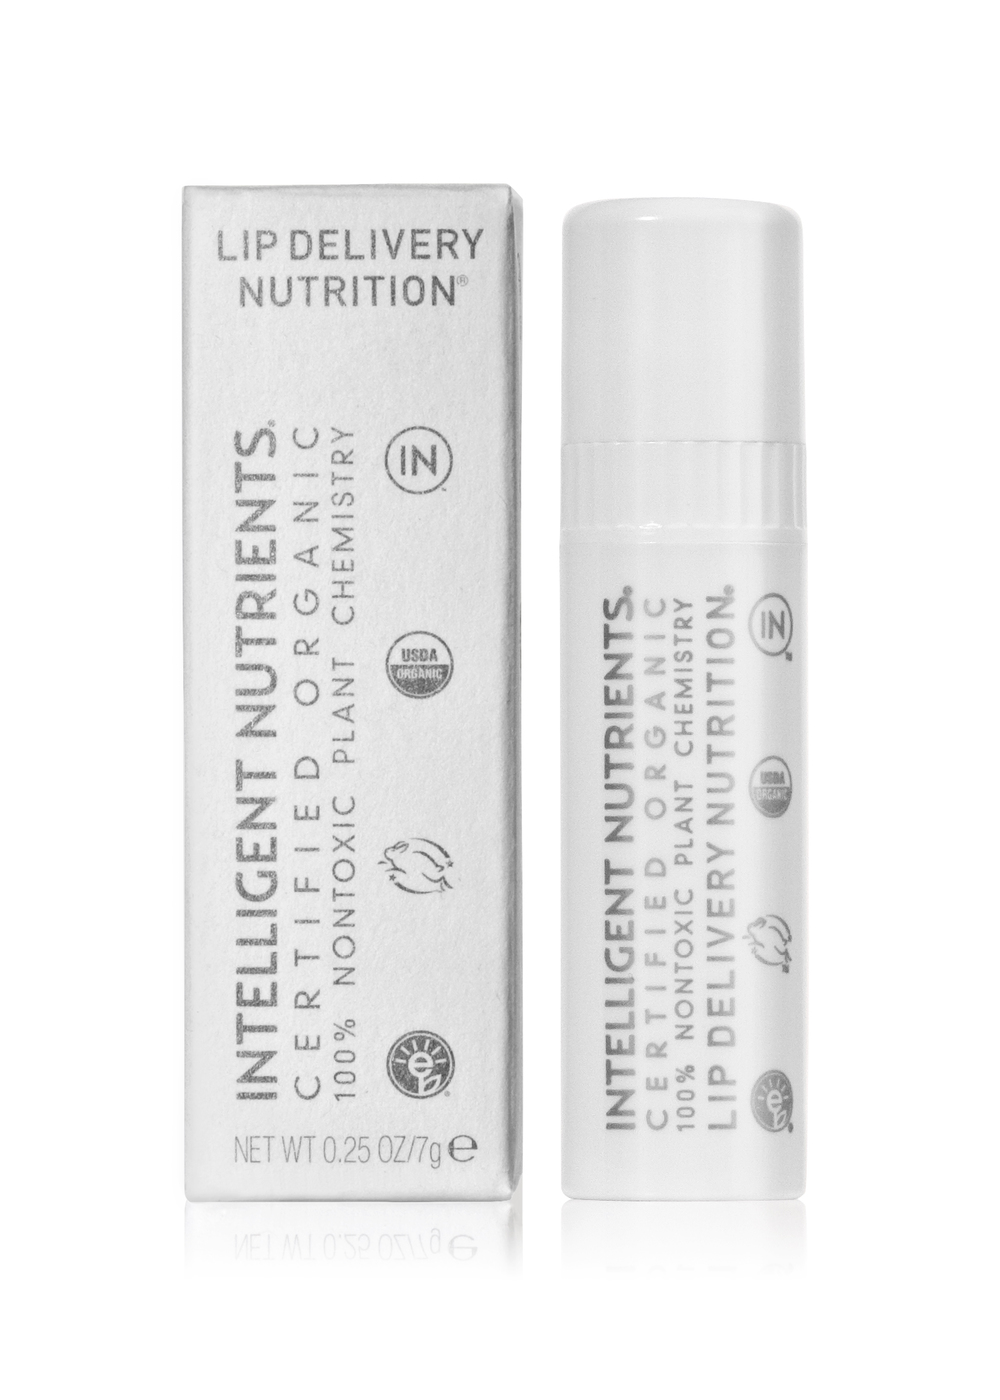 Lip Delivery Nutrition (DKK120/7g)